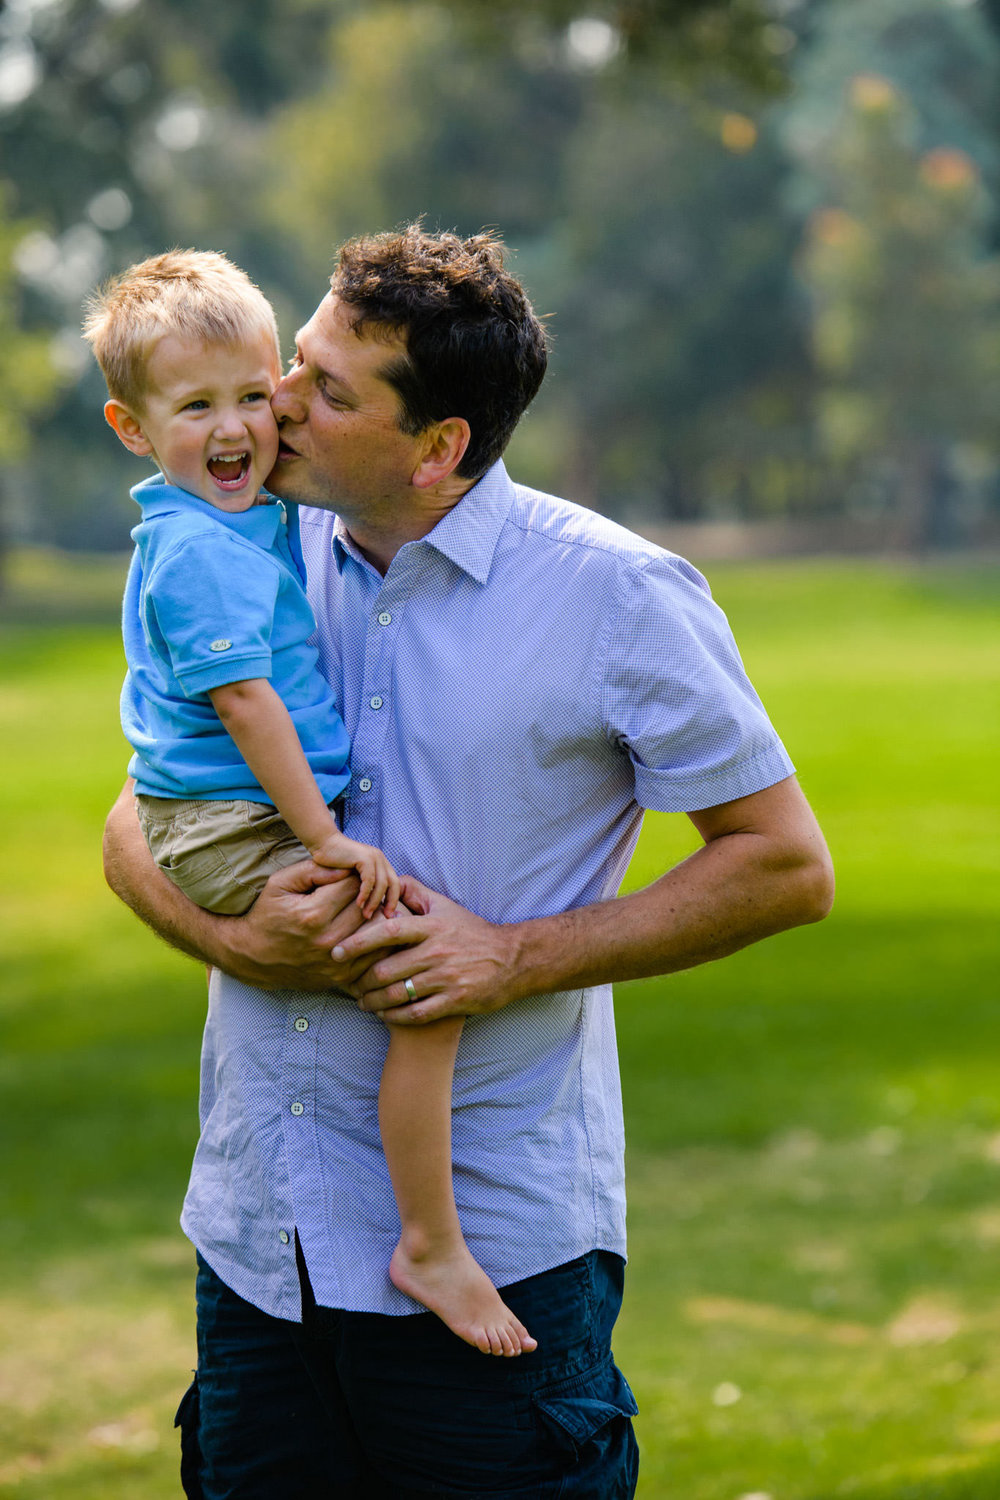 Toddler laughing as dad kisses him on the cheek